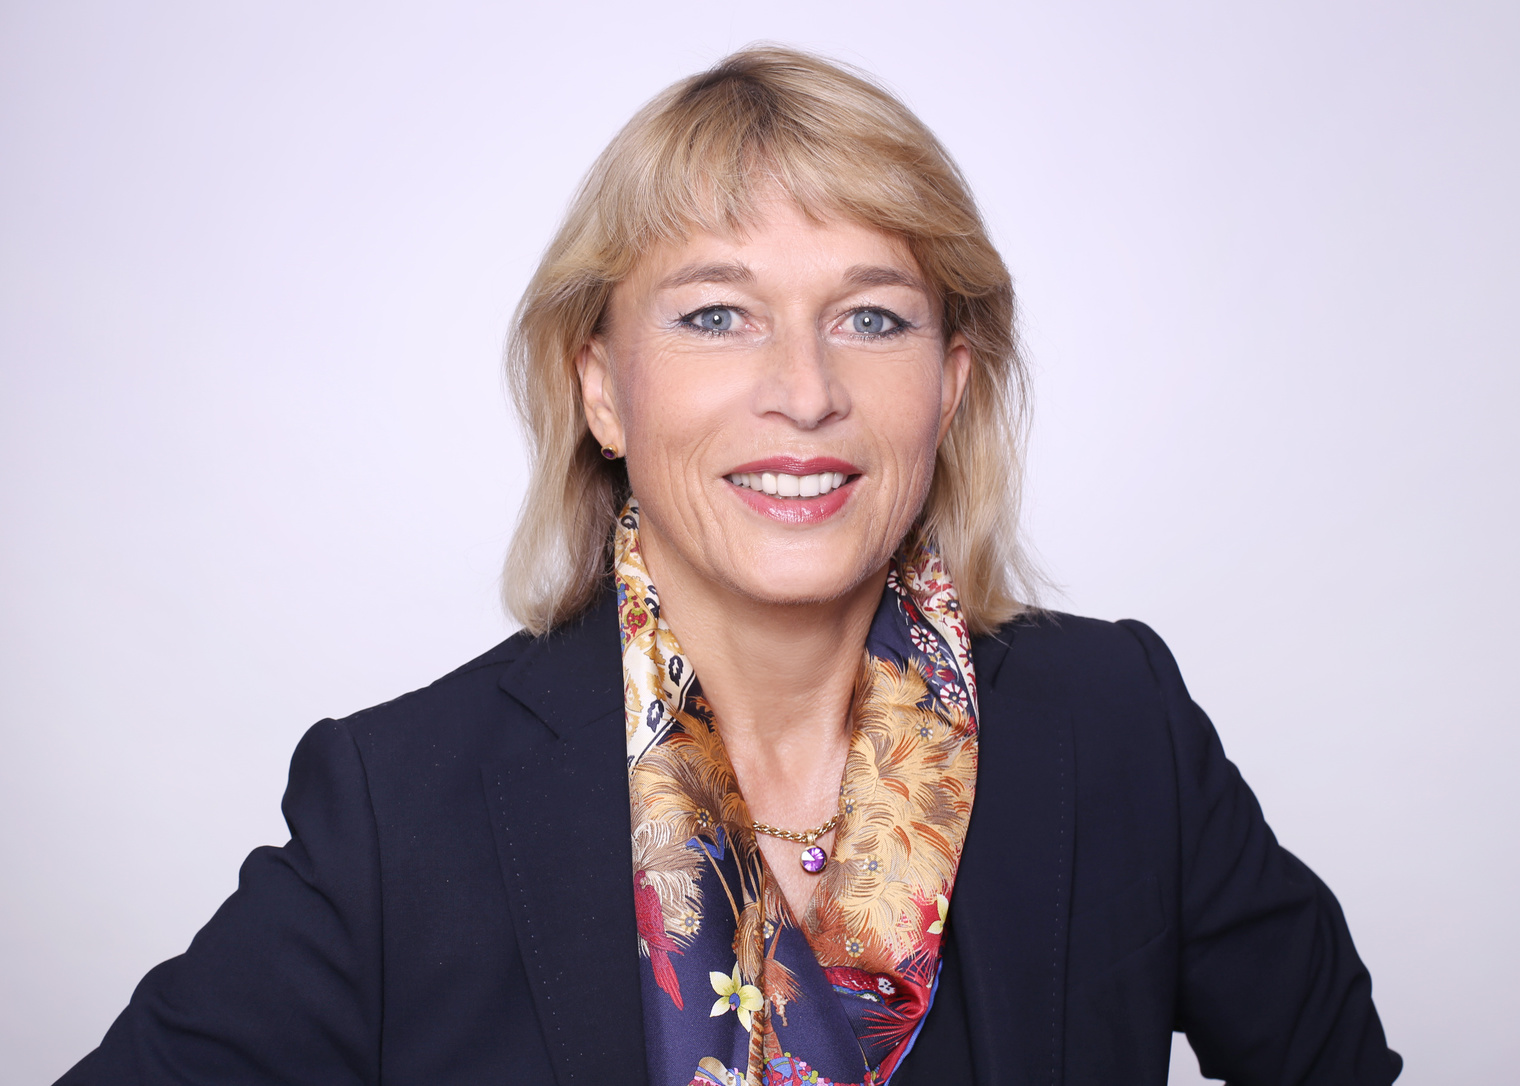 Angela Müller-Valkyser to become Co-Head of Wealth Management Germany at Berenberg